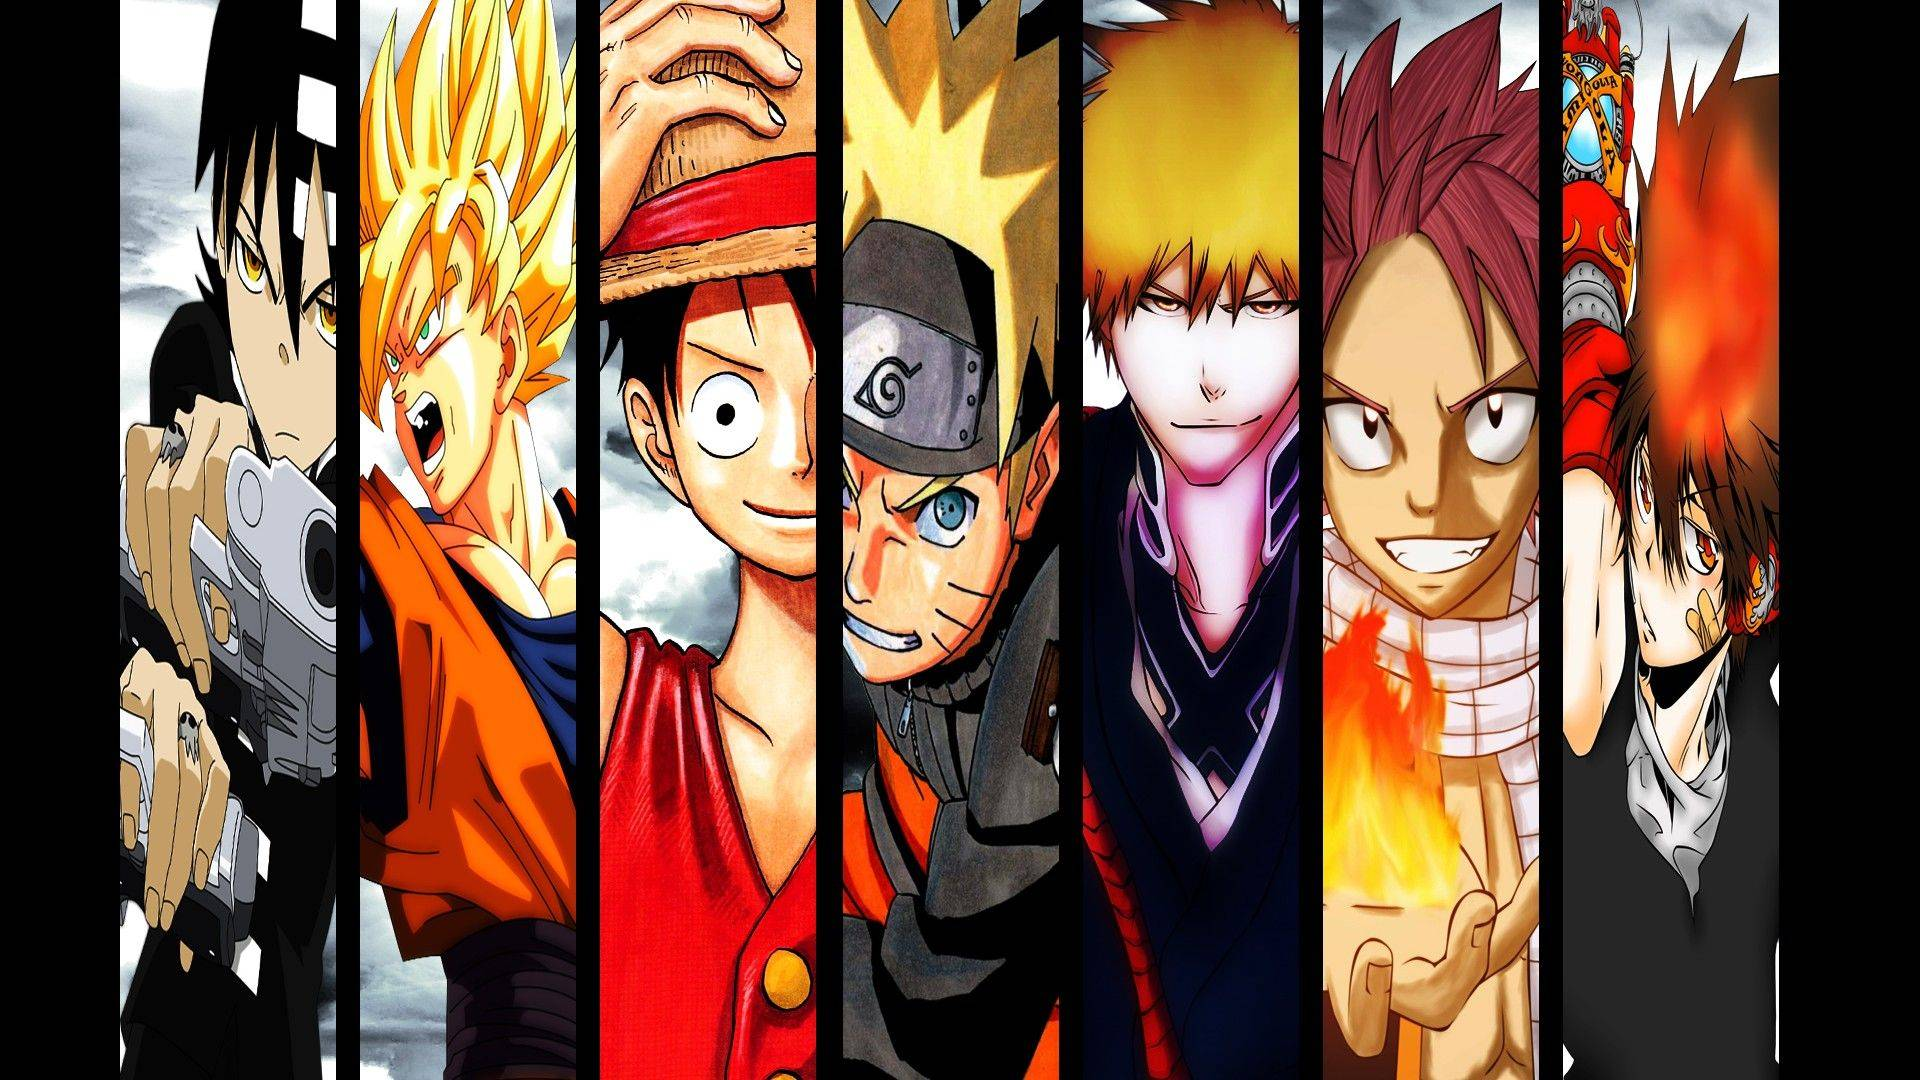 Naruto wallpapers HD For desktop  wallpapermonkey Naruto wallpapers, Naruto Pictures, Naruto Images, Naruto 1920x1080